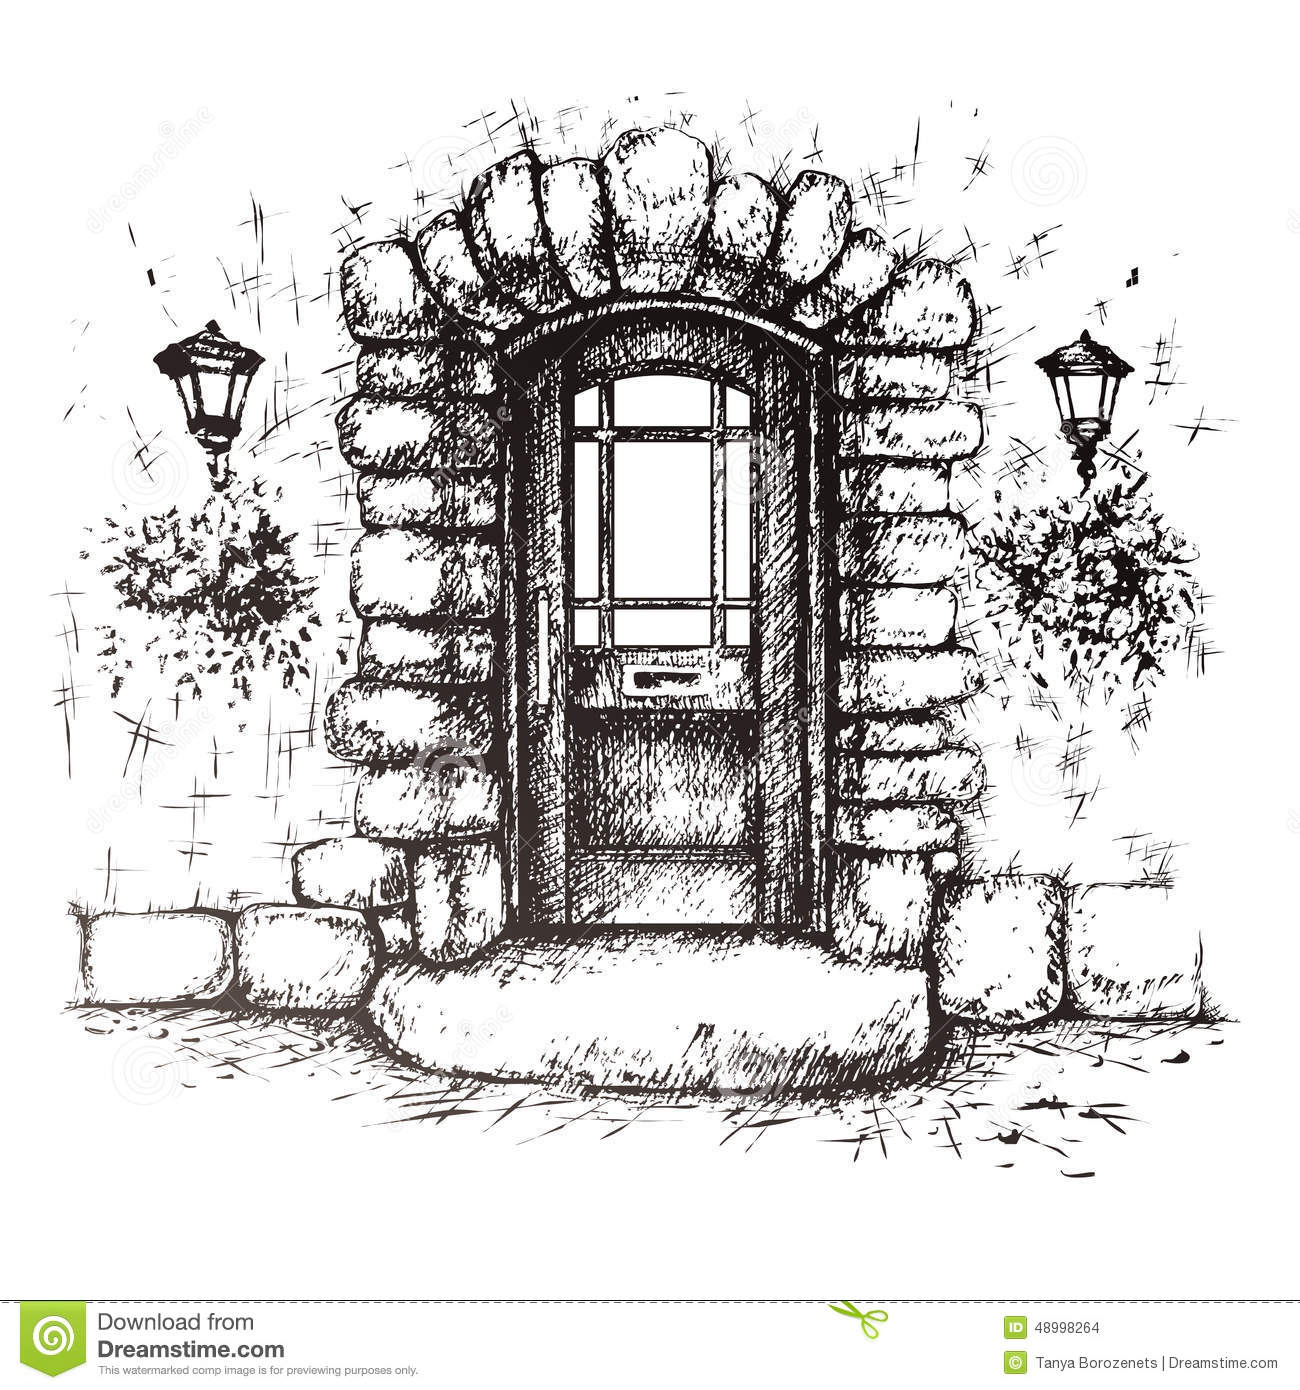 Open front door drawing French Open Front Door Drawing Perspective Open Front Door Drawing If You Leave The Cage Art Print Free Printable Coloring Pages Open Front Door Drawing 0700654 Dogum